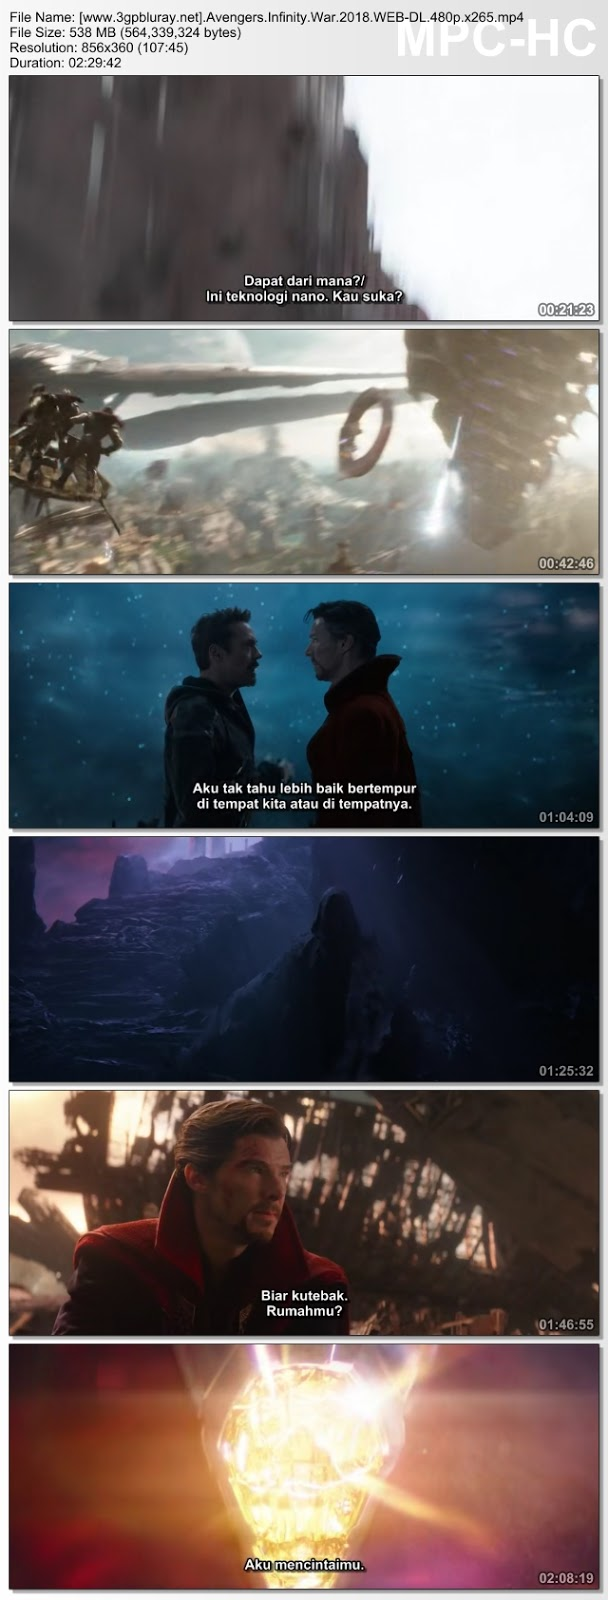 Screenshots Download Film Gratis Hardsub Indo Avengers: Infinity War (2018) WEB-DL 480p MP4 Subtitle Bahasa Indonesia 3GP